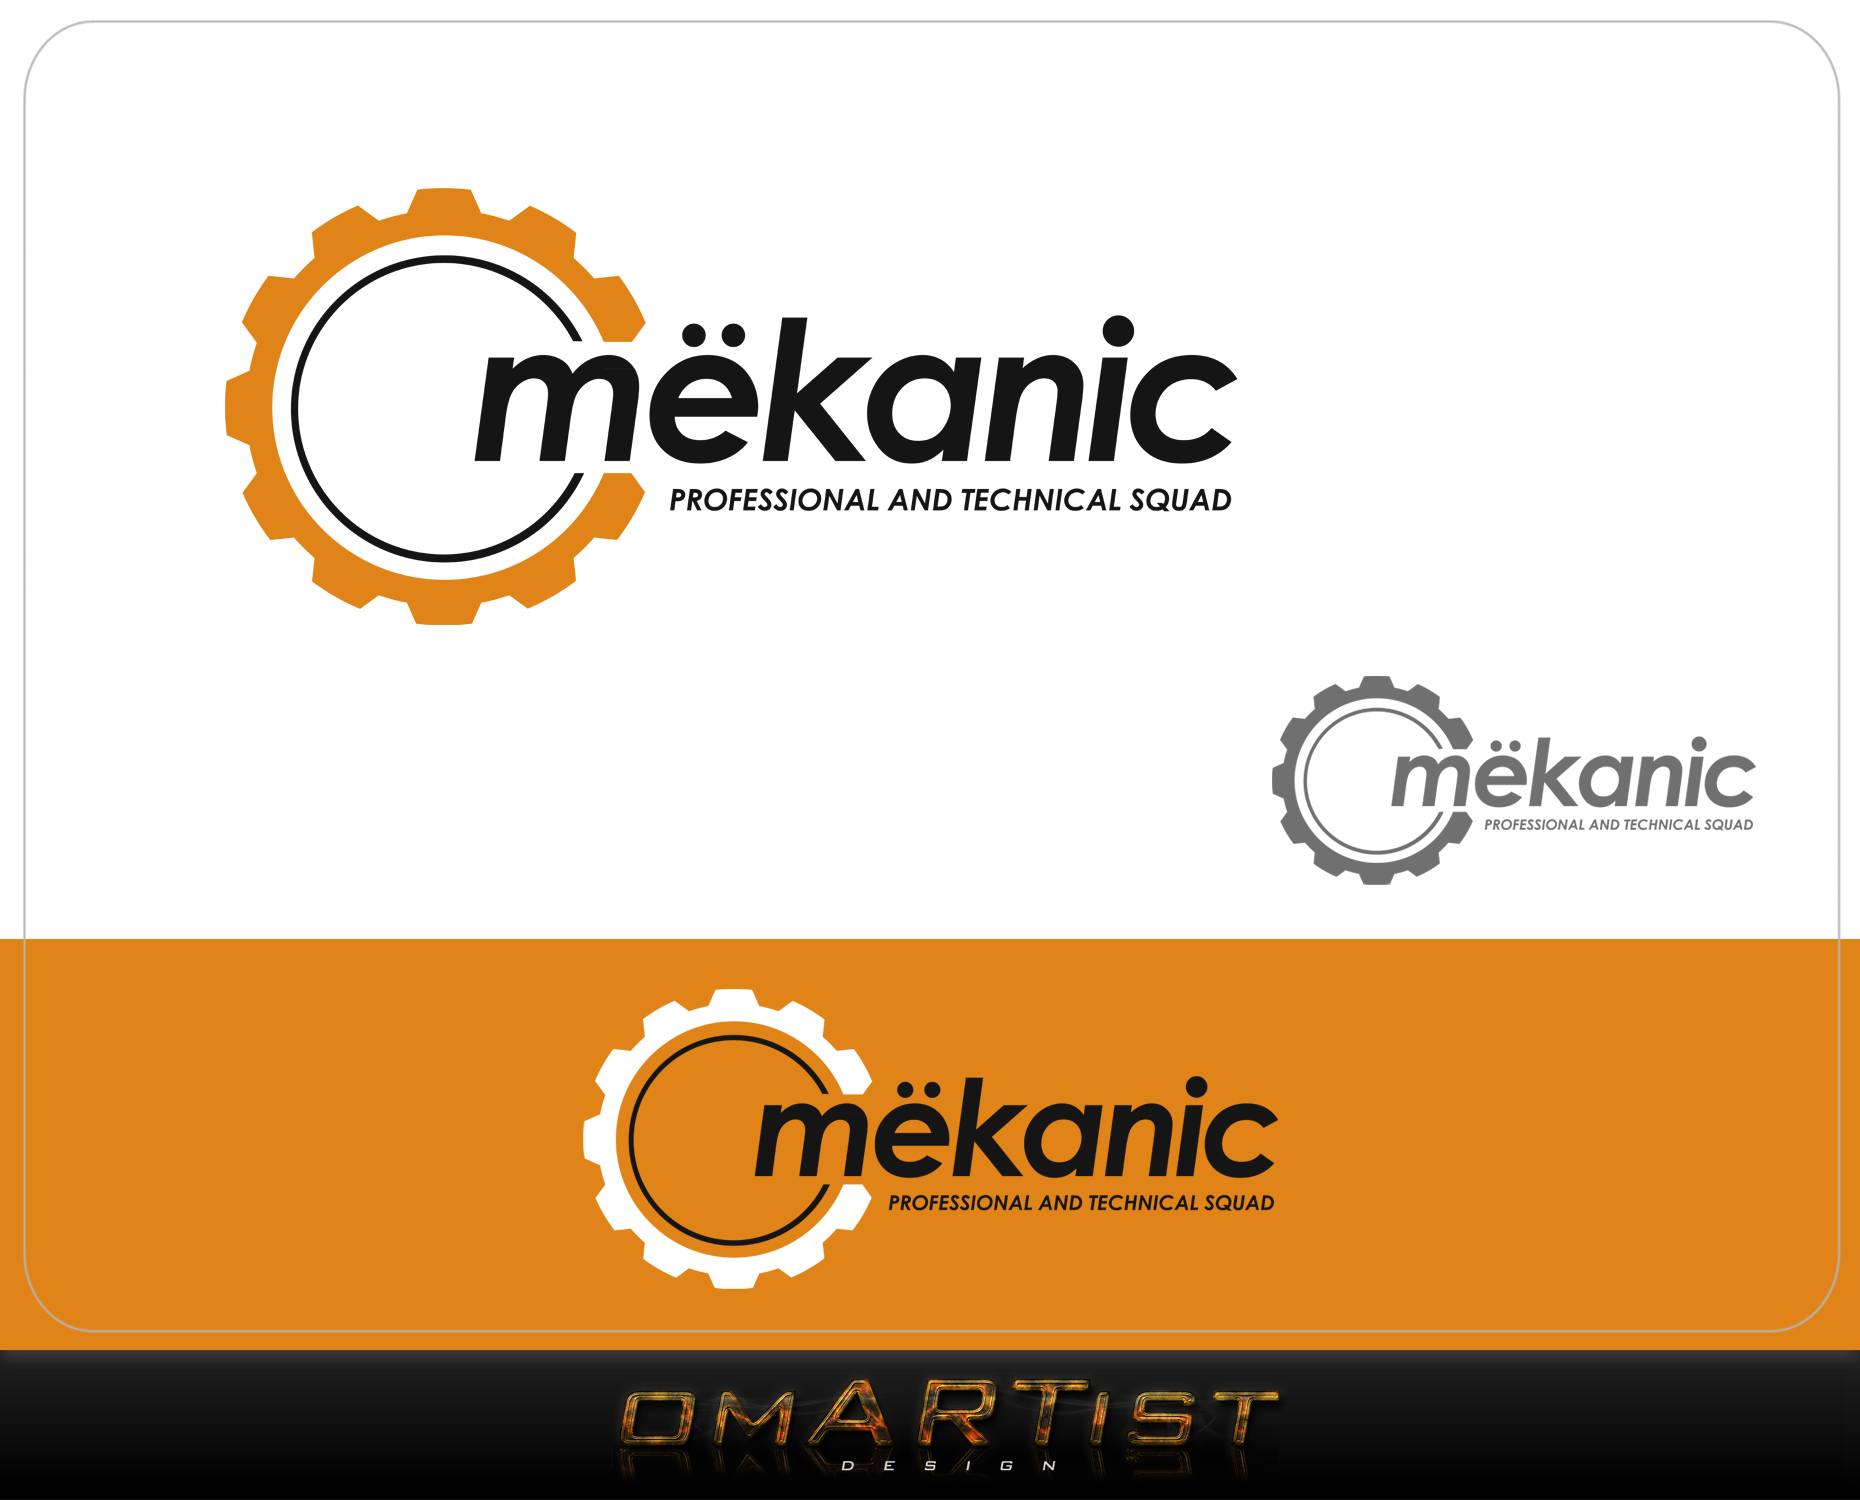 Logo Design by omARTist - Entry No. 45 in the Logo Design Contest Creative Logo Design for MËKANIC - Professional and technical squad.